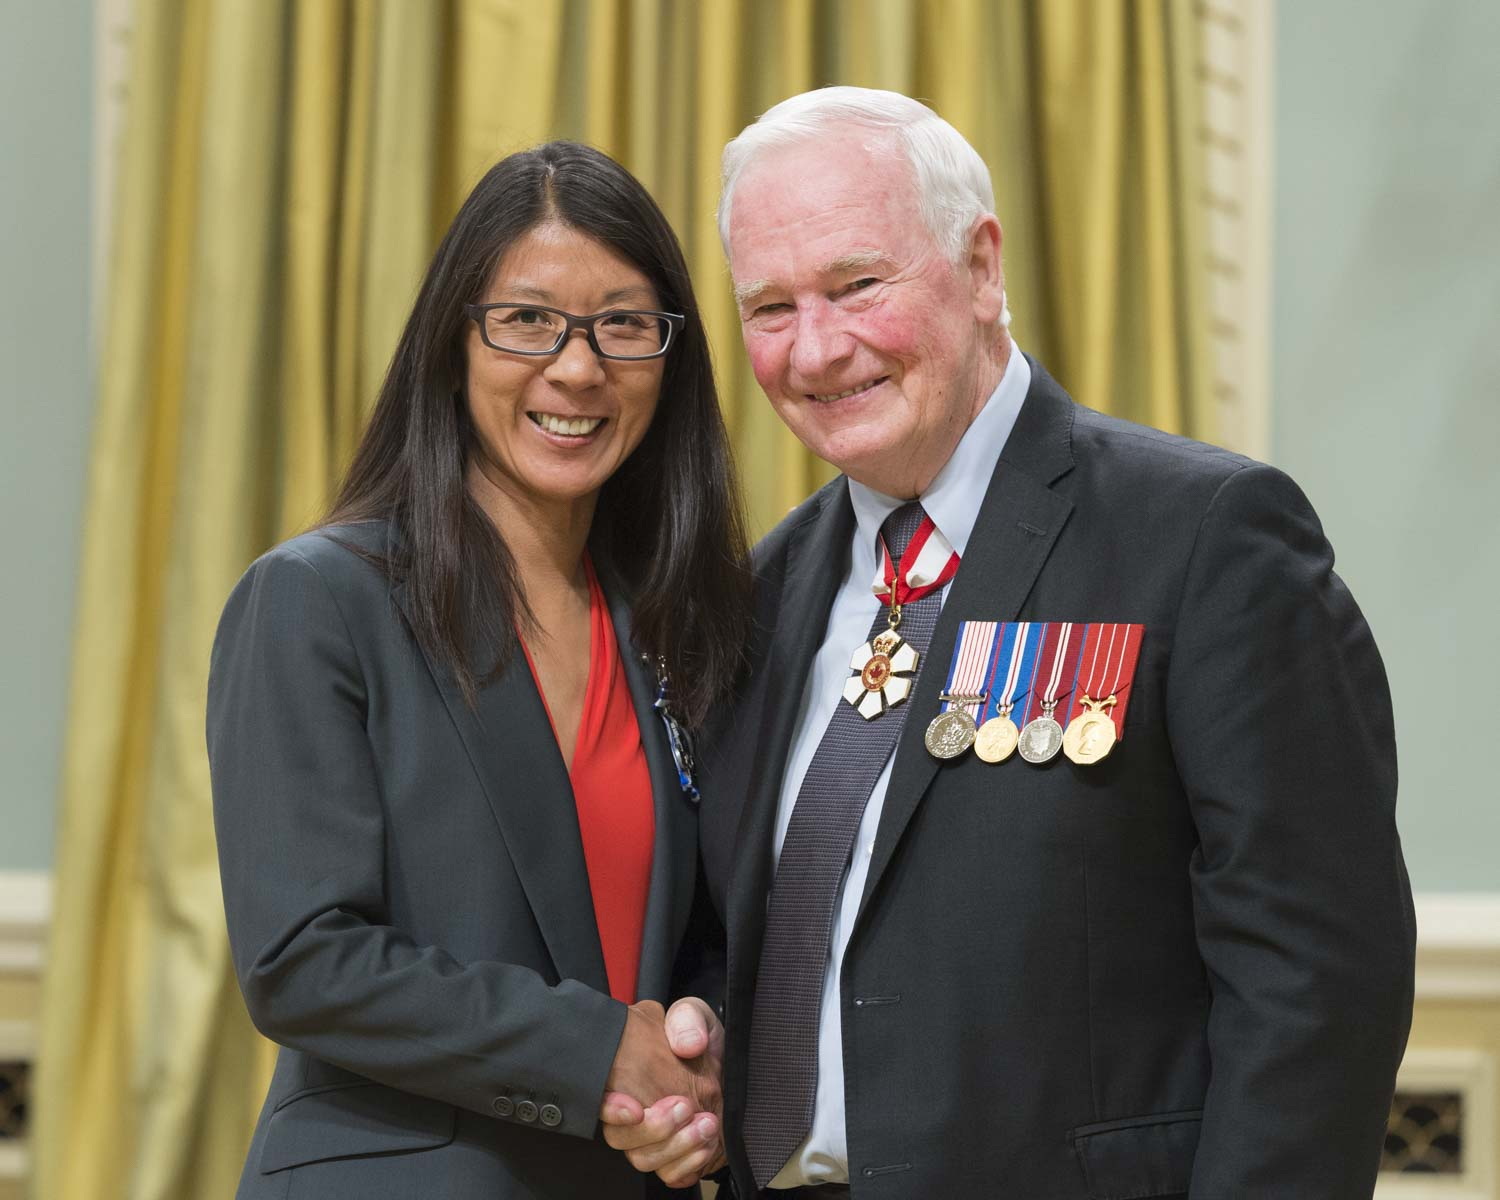 His Excellency presented the Meritorious Service Cross to Dr. Joanne Liu. As the international president of Doctors Without Borders/Médecins Sans Frontières, Dr. Joanne Liu demonstrated exceptional leadership in running the organization's clinical and epidemiological response to the largest Ebola outbreak in history. She advocated for the rights of sick people, inspired the teams on the ground with frequent visits, and called for a global humanitarian response to contain, control and mitigate the epidemic.